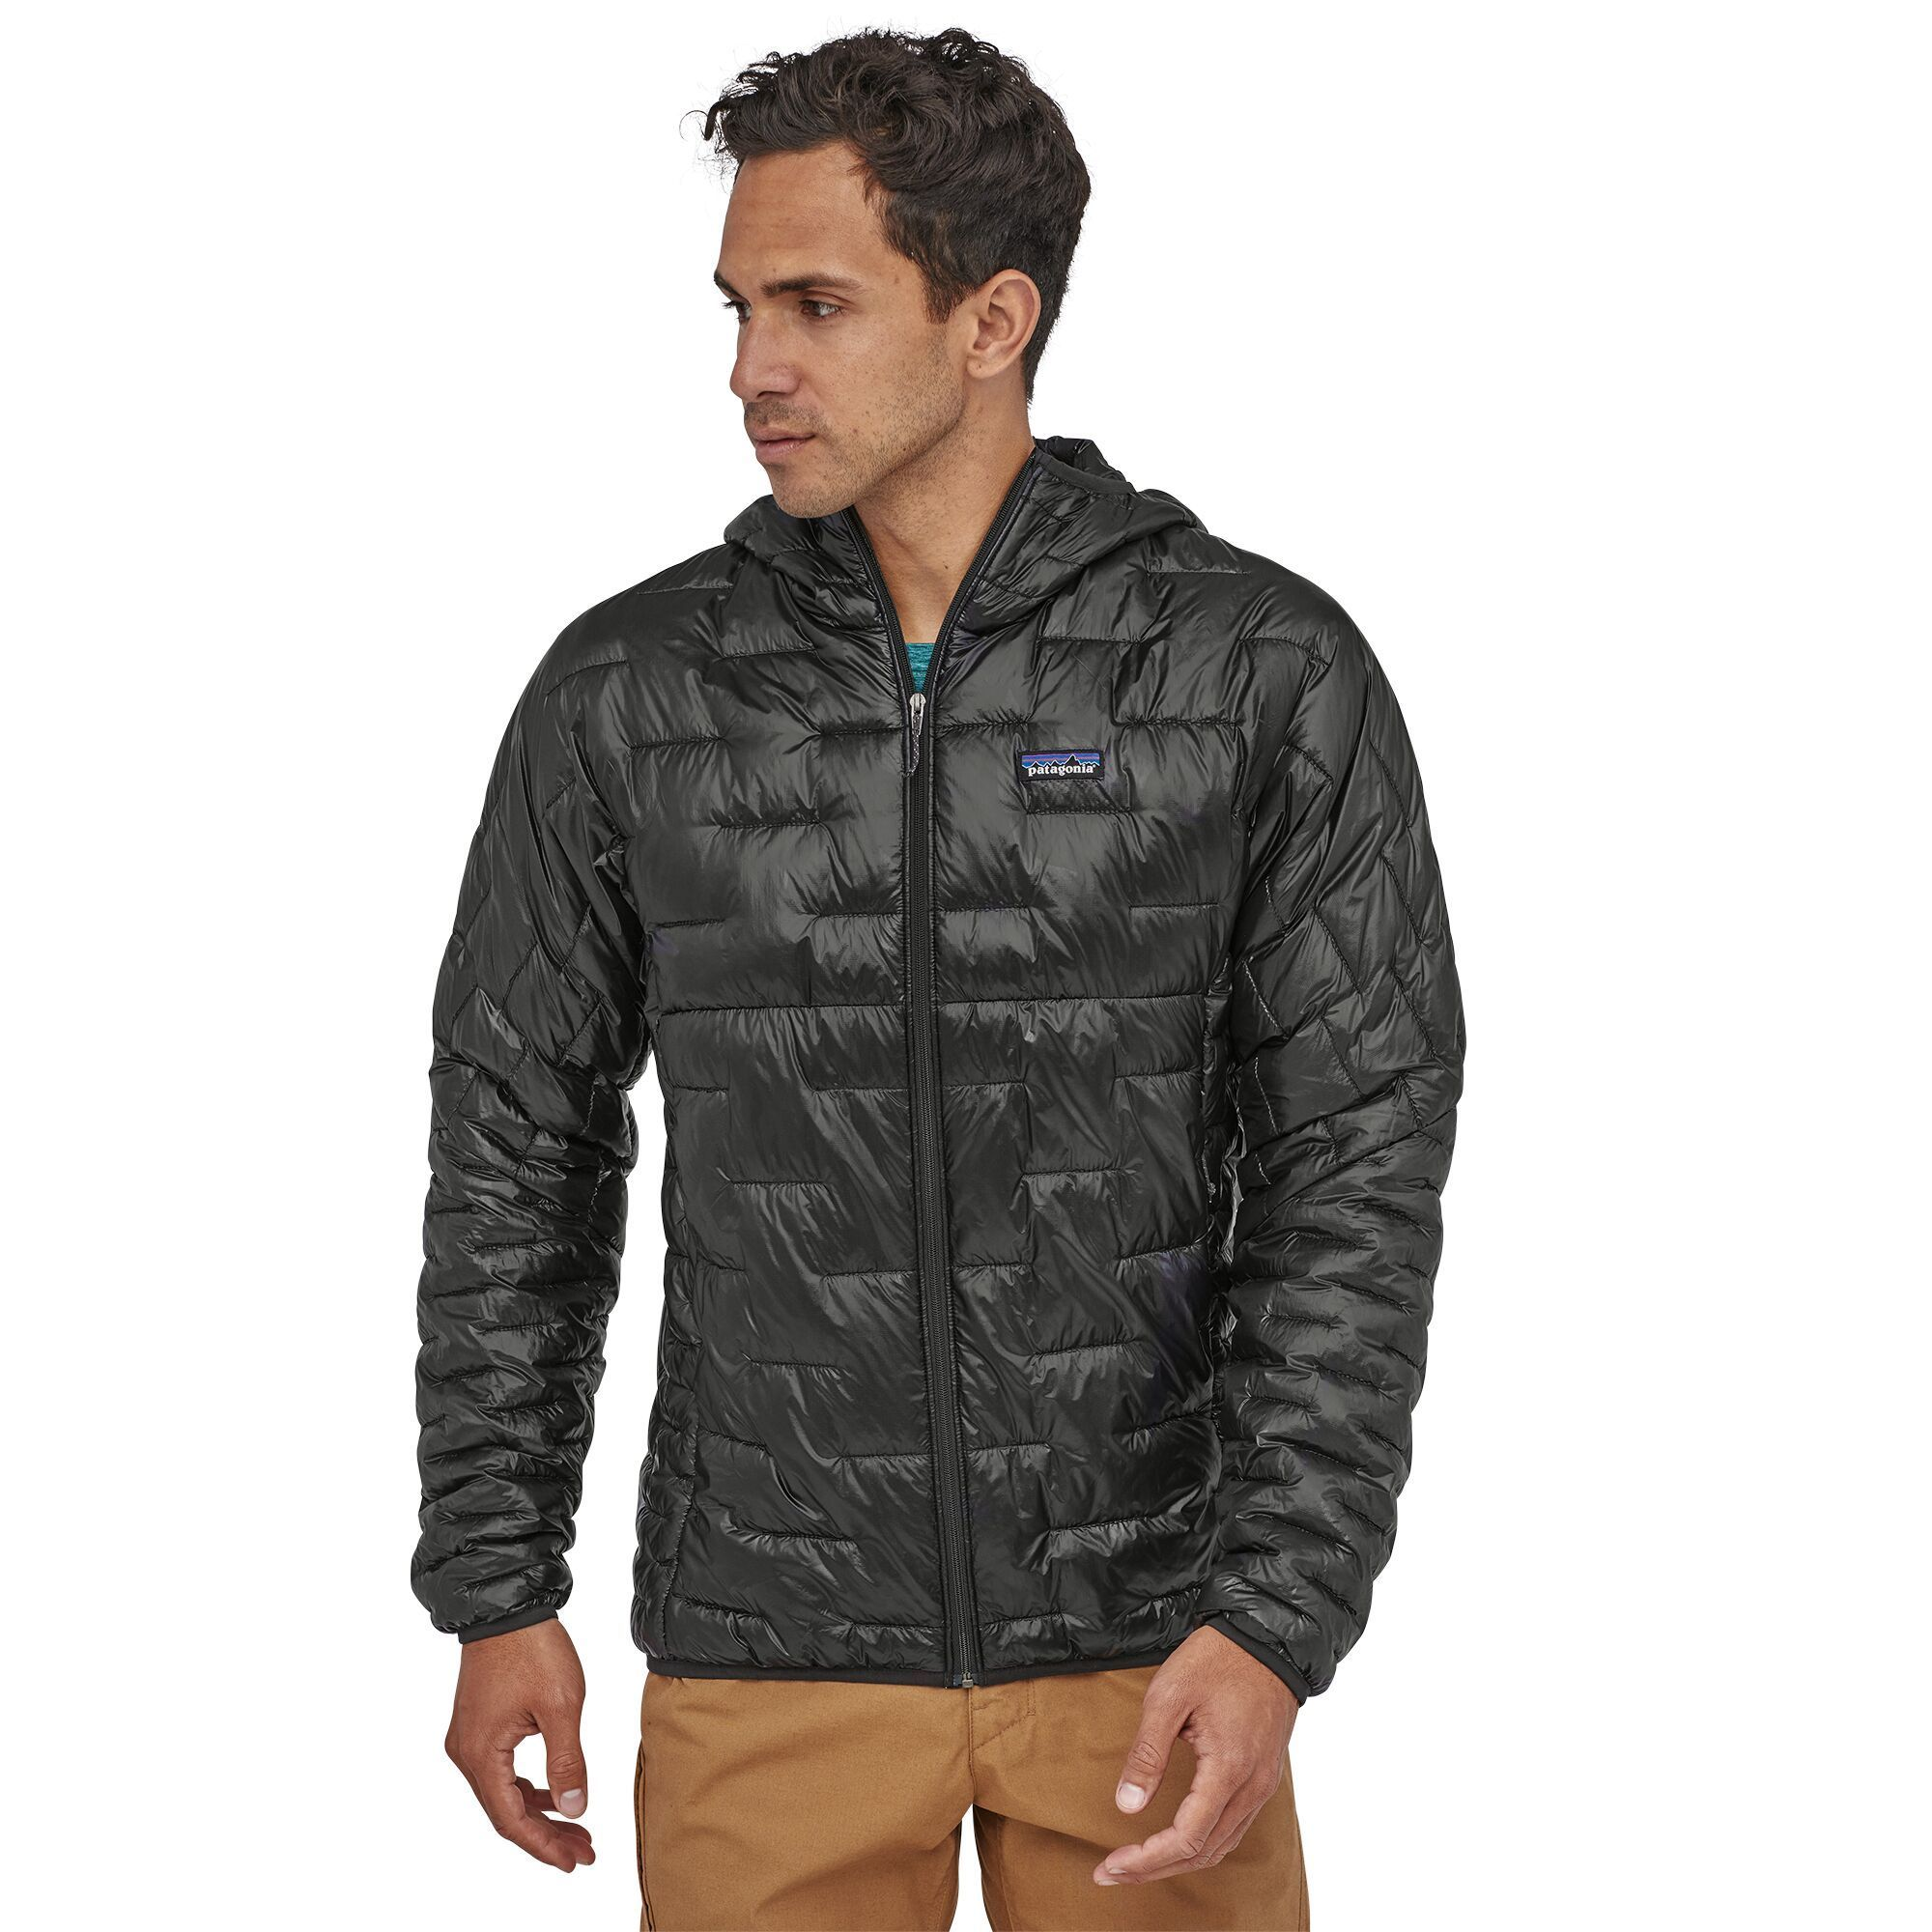 Patagonia - M's Micro Puff®  Hoody - Fair Trade Certified sewn - Weekendbee - sustainable sportswear